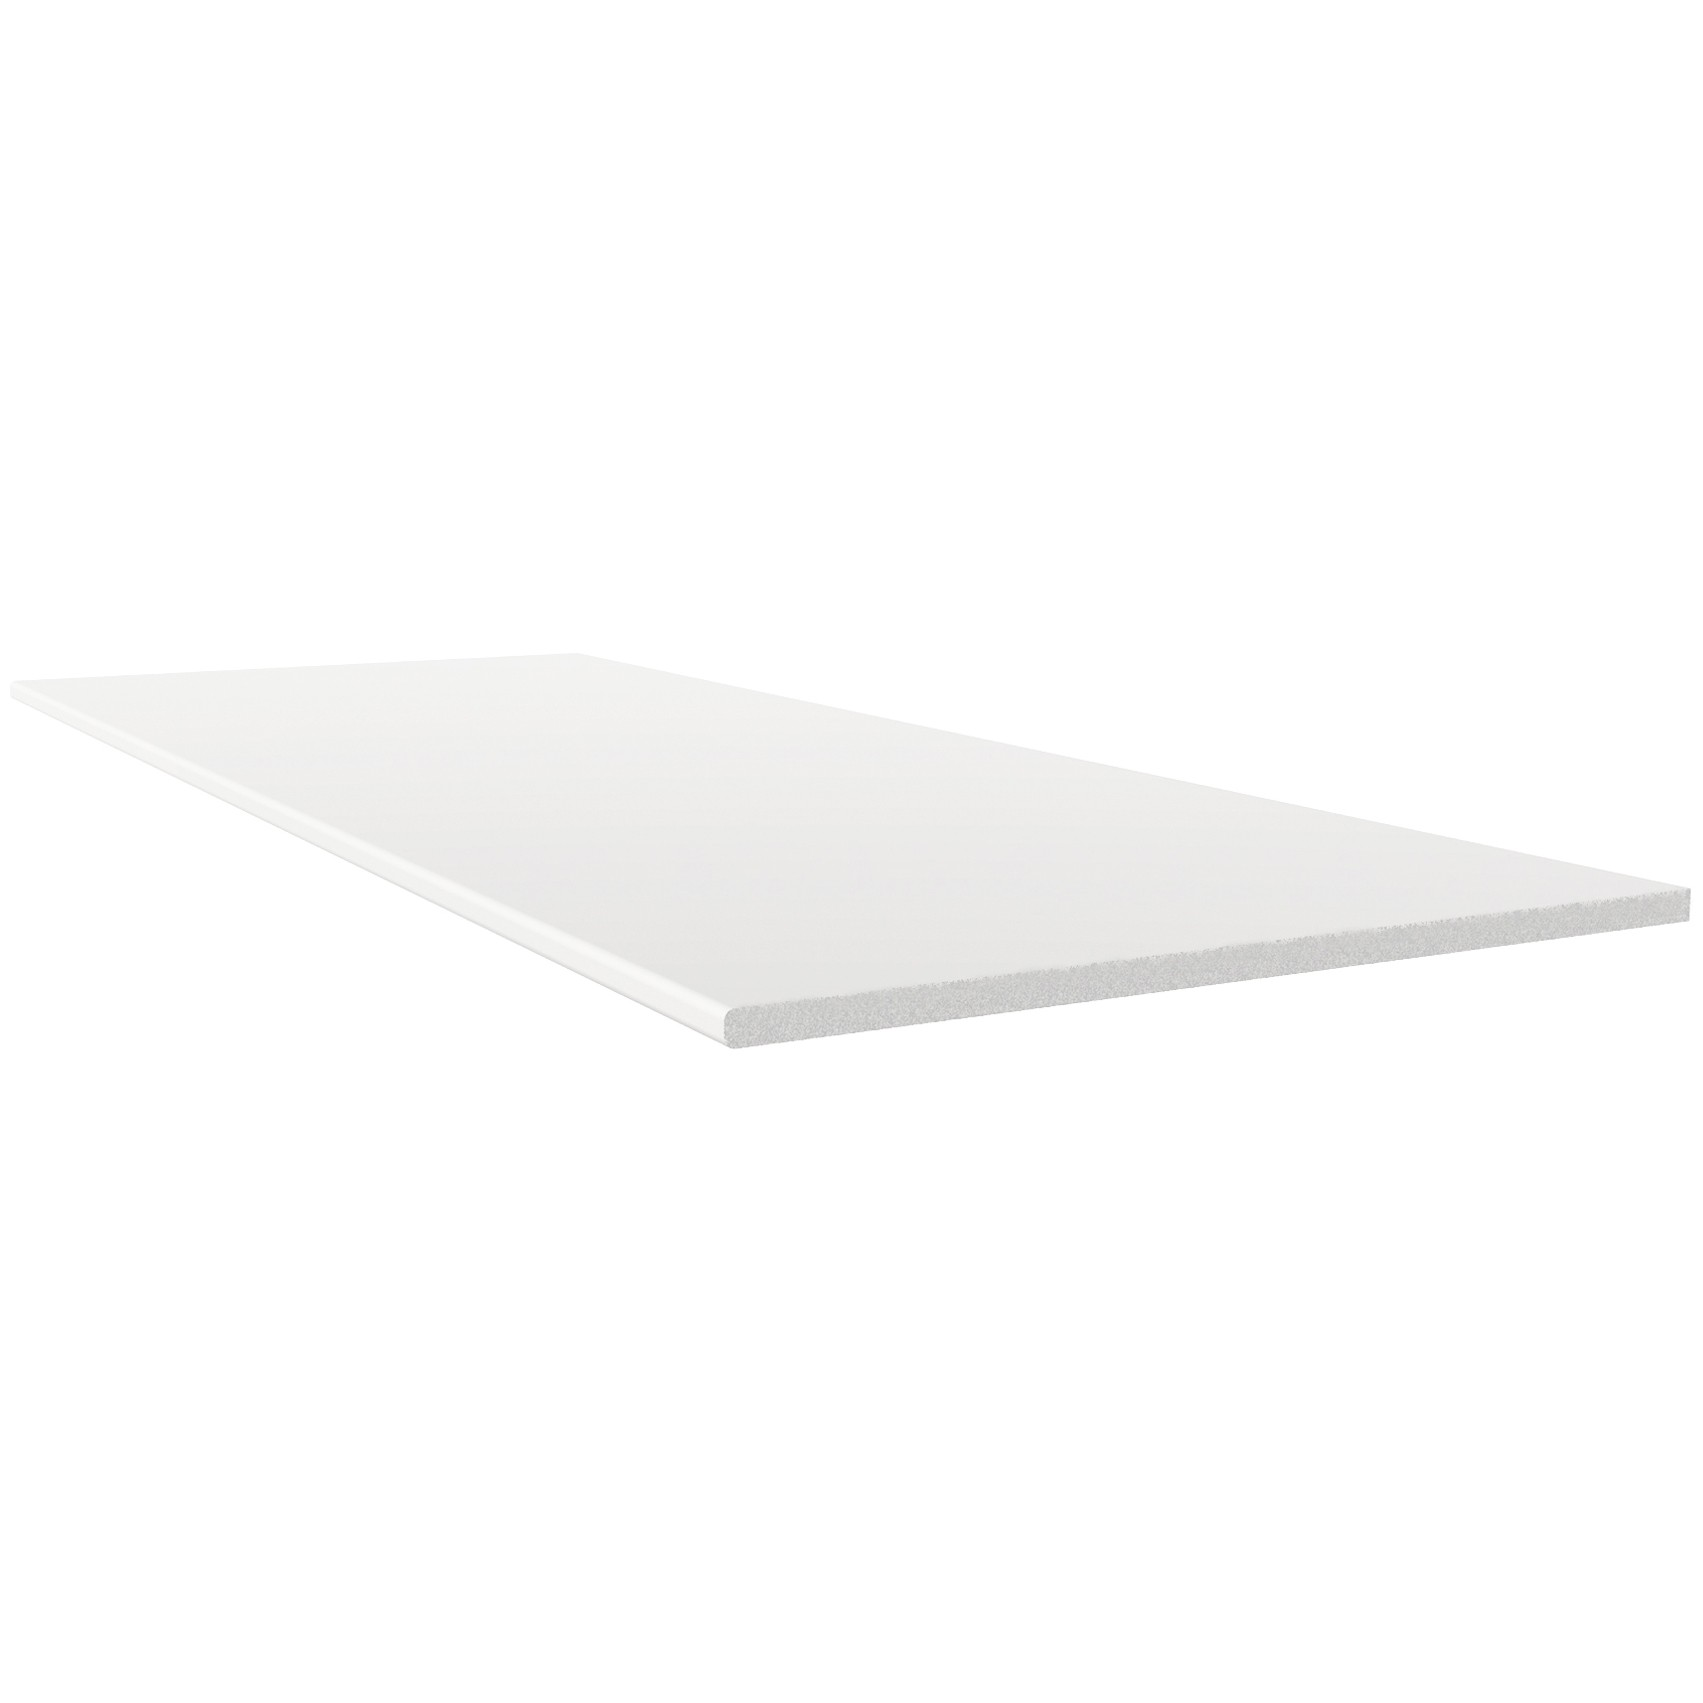 Freefoam 10mm Solid Soffit Board - White, 150mm, 2.5 metre